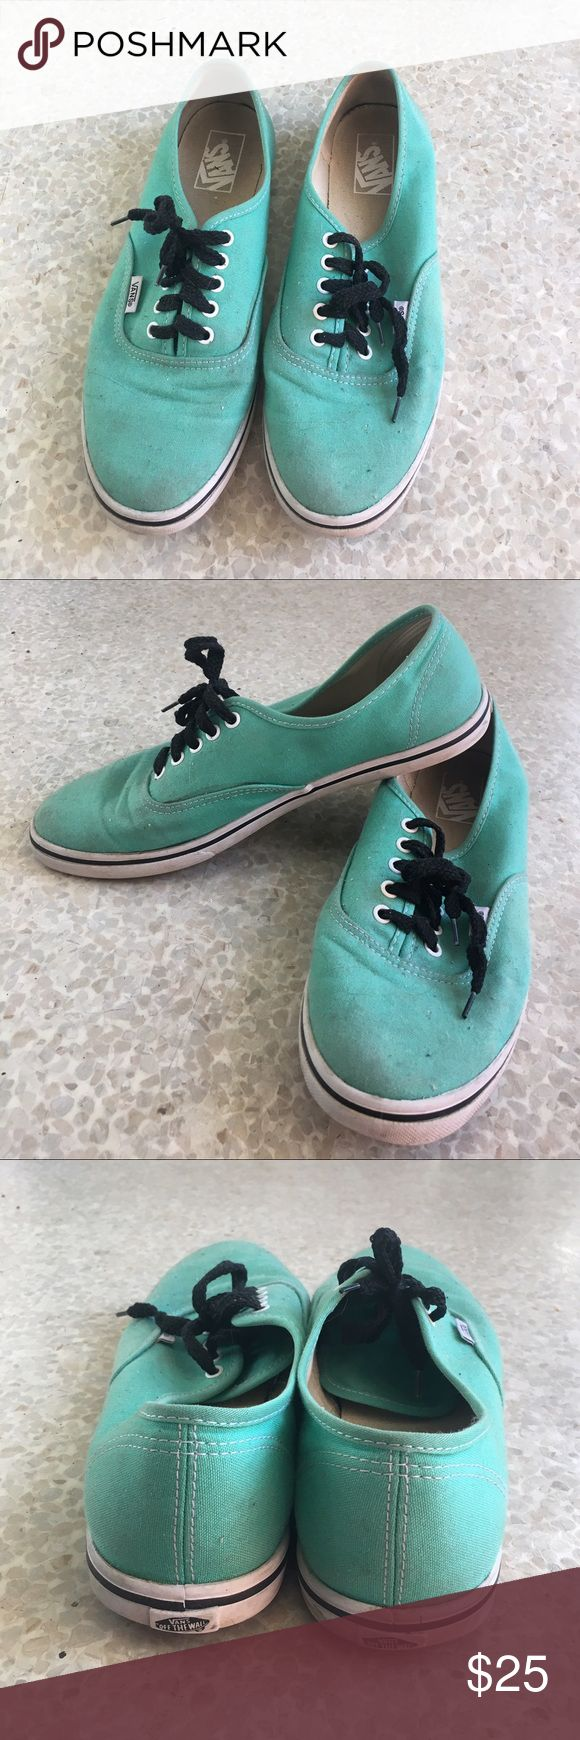 mint green vans gently worn. Vans Shoes Sneakers